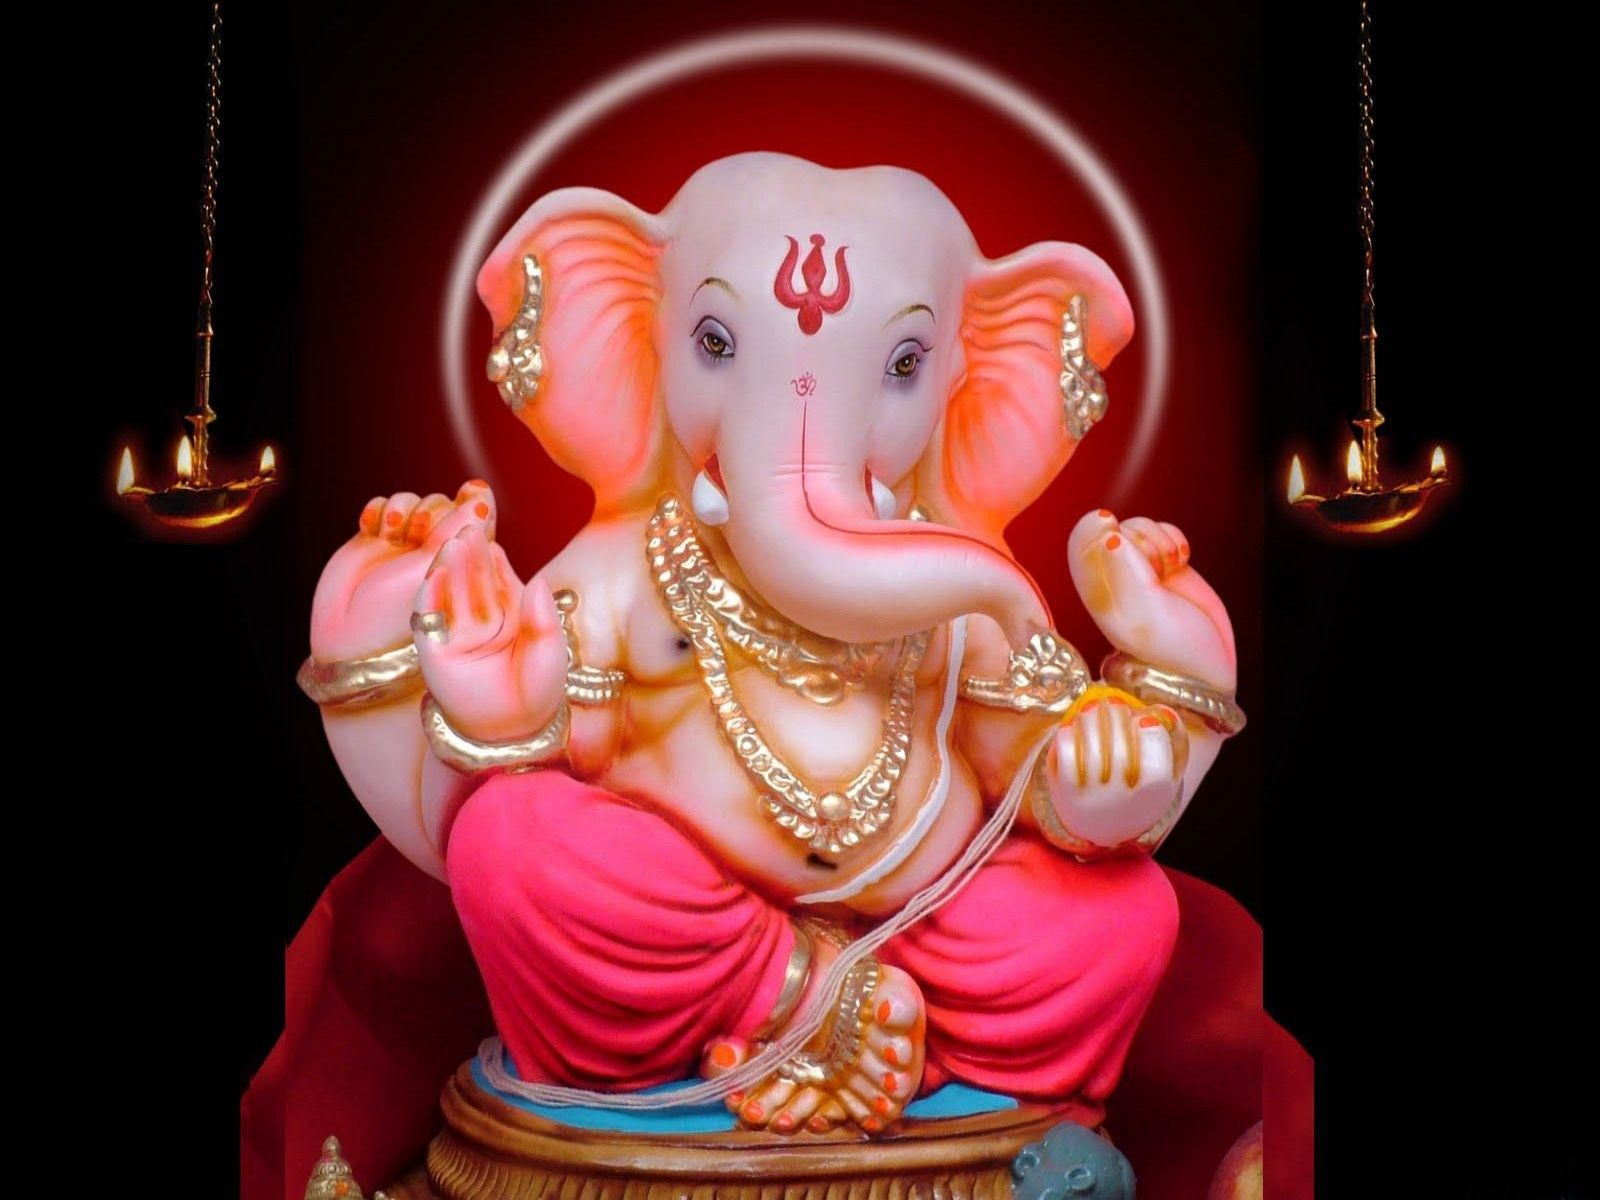 3d Wallpaper Of Lord Ganesha Hd Download 3d Wallpaper Of Lord Ganesha Download 3d Wallpaper Of L Ganesh Images Happy Ganesh Chaturthi Images Ganesh Wallpaper